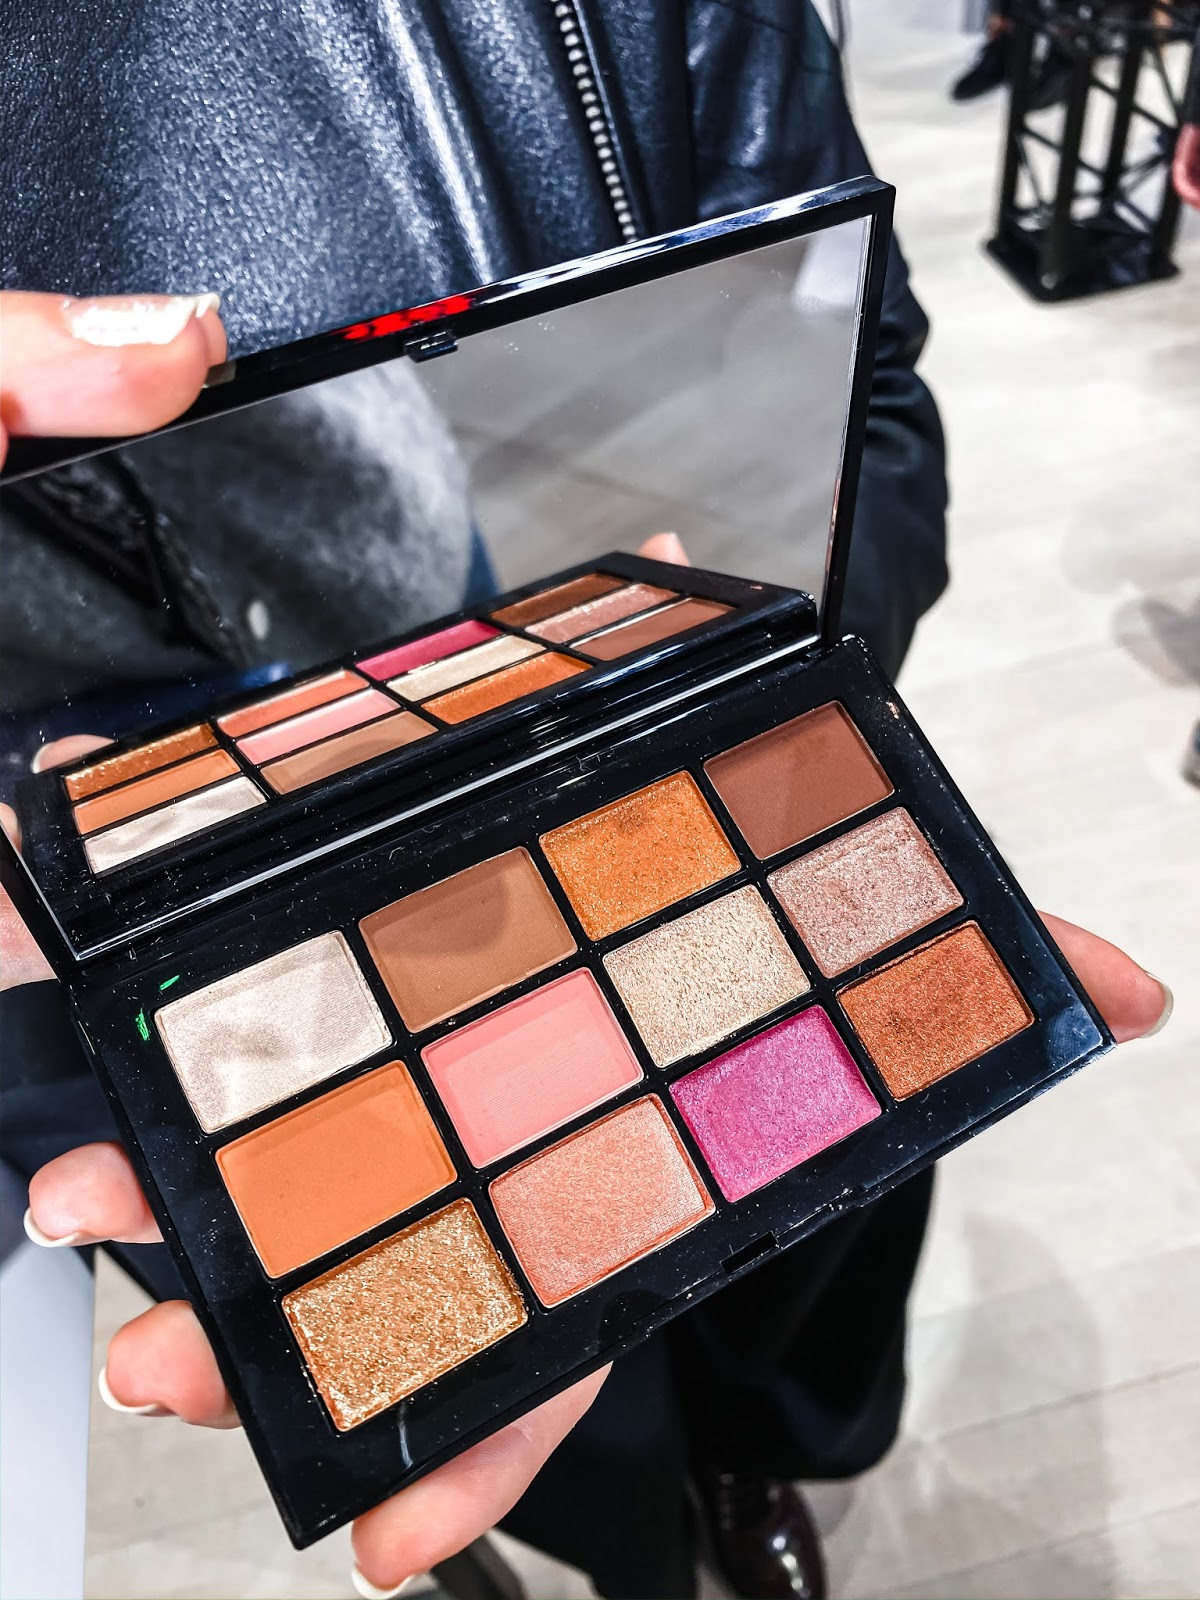 Nars Maquillage Printemps 2020 Swatch